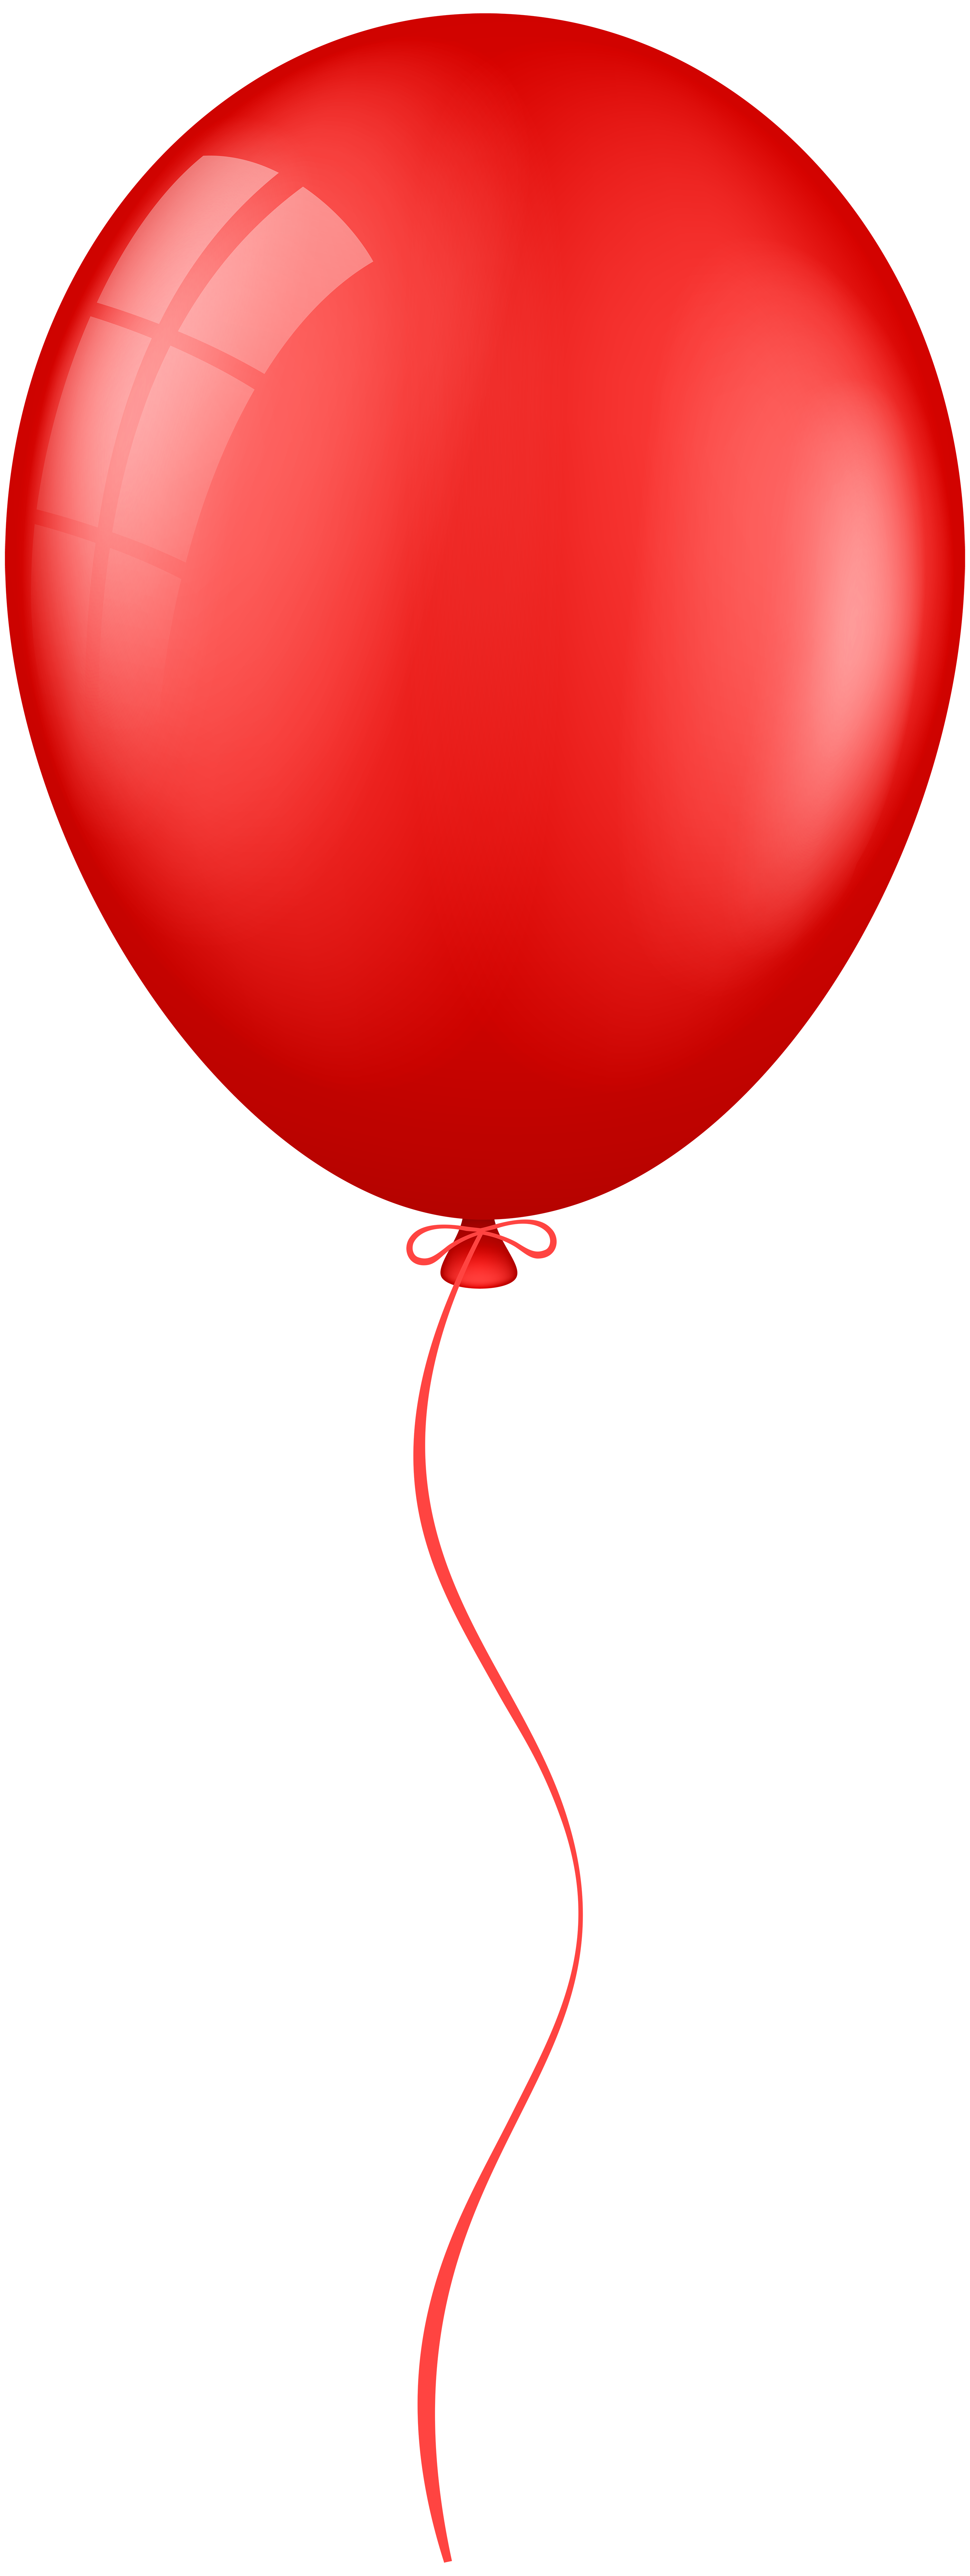 Clipart balloon winnie the pooh. Red png clip art